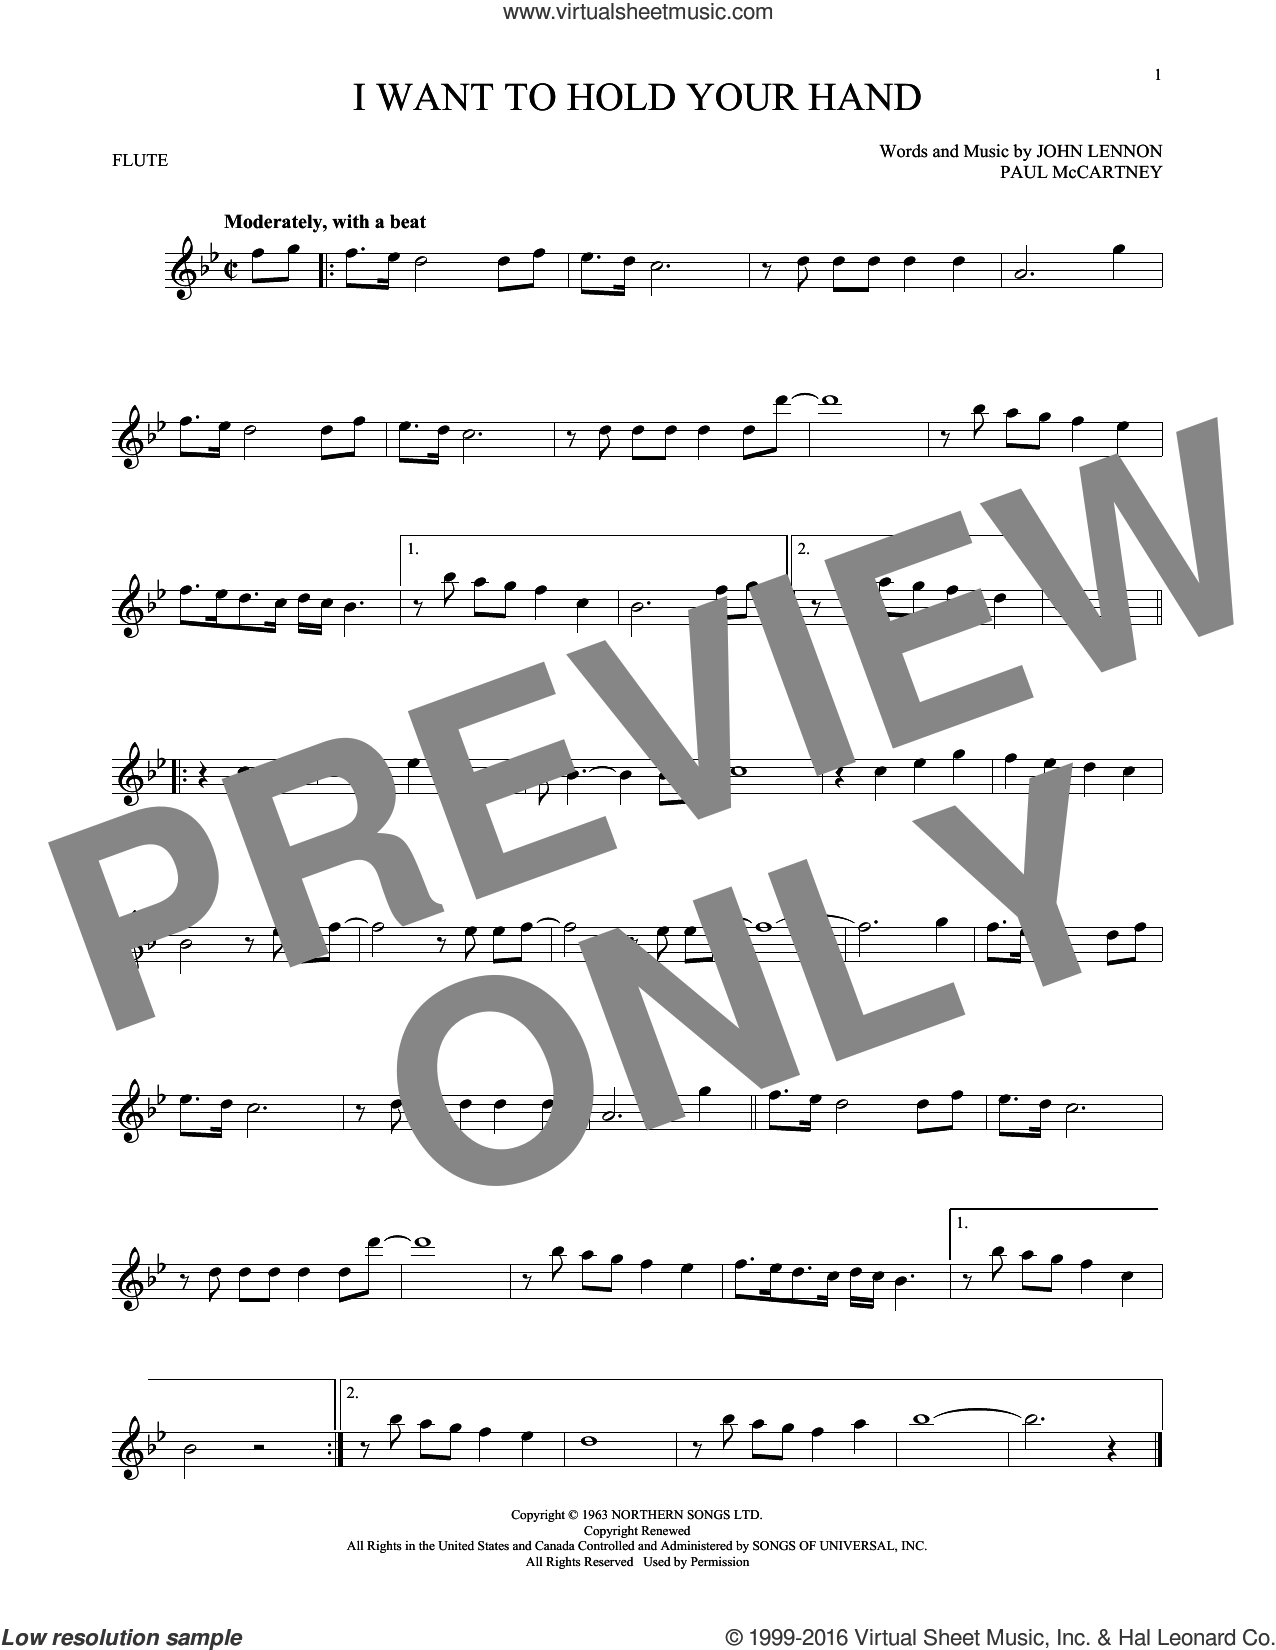 I Want To Hold Your Hand sheet music for flute solo by The Beatles. Score Image Preview.